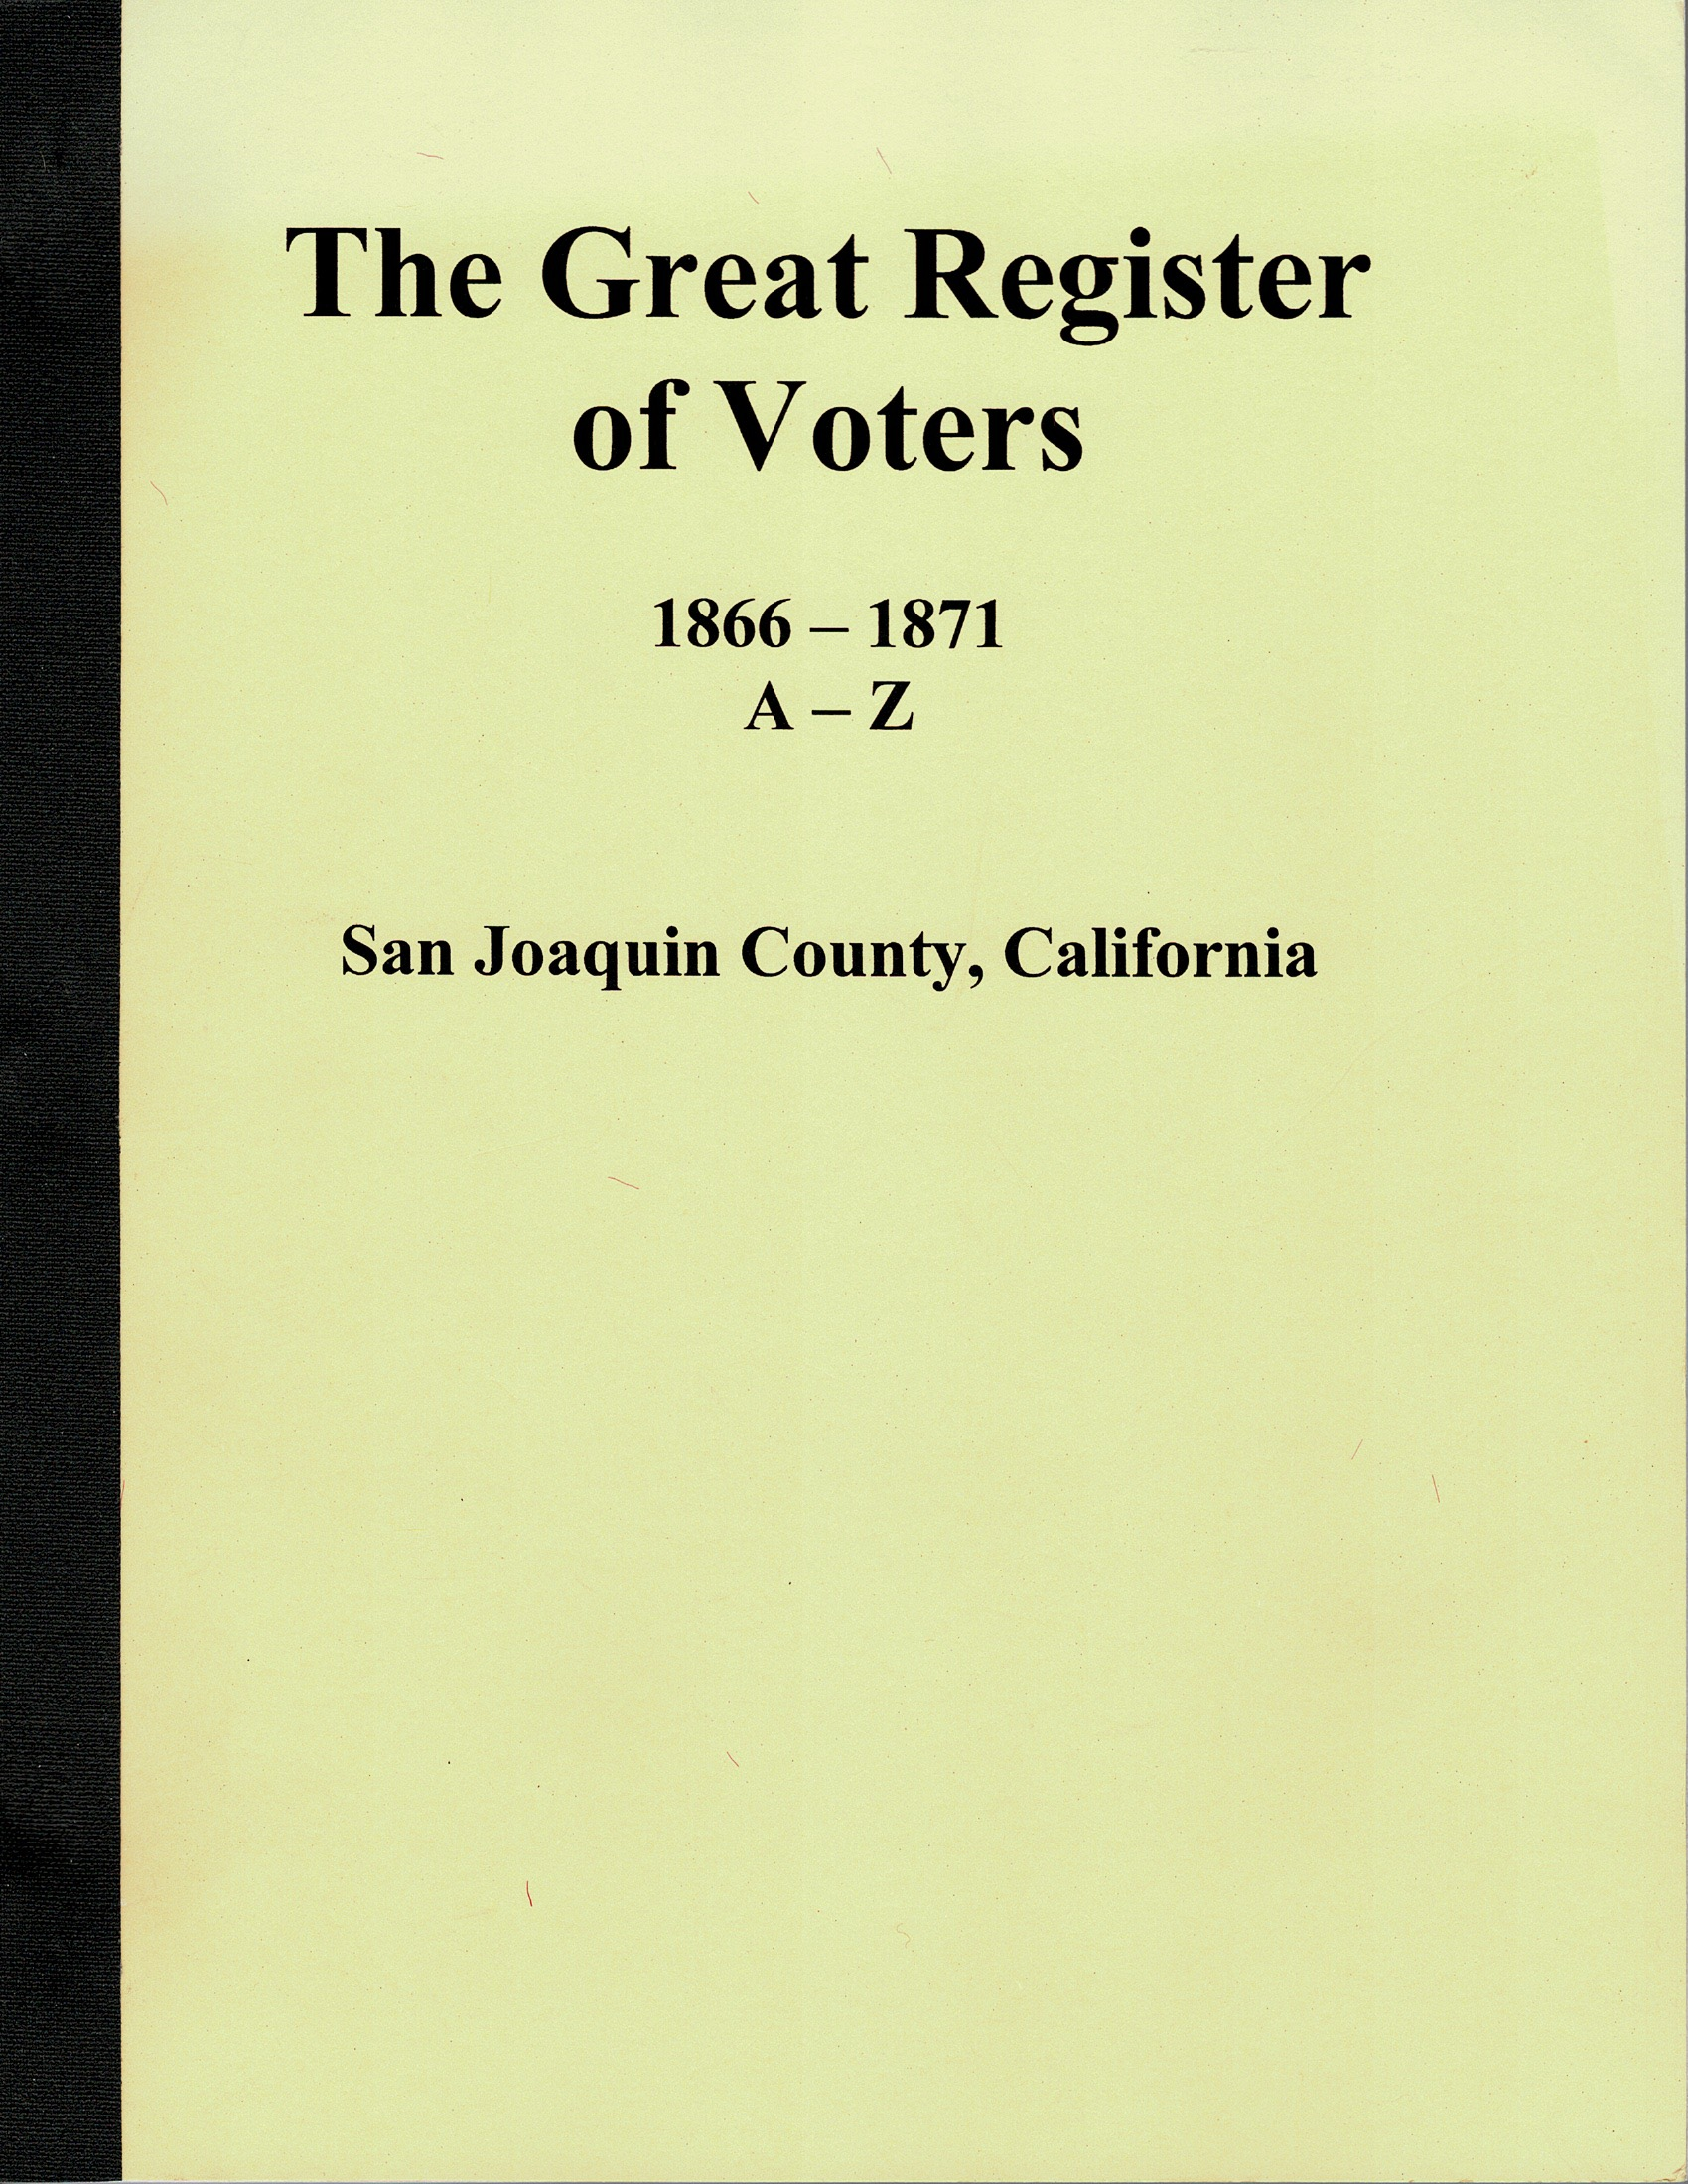 The Great Register of Voters, 1866 – 1871, A – Z, San Joaquin County, California